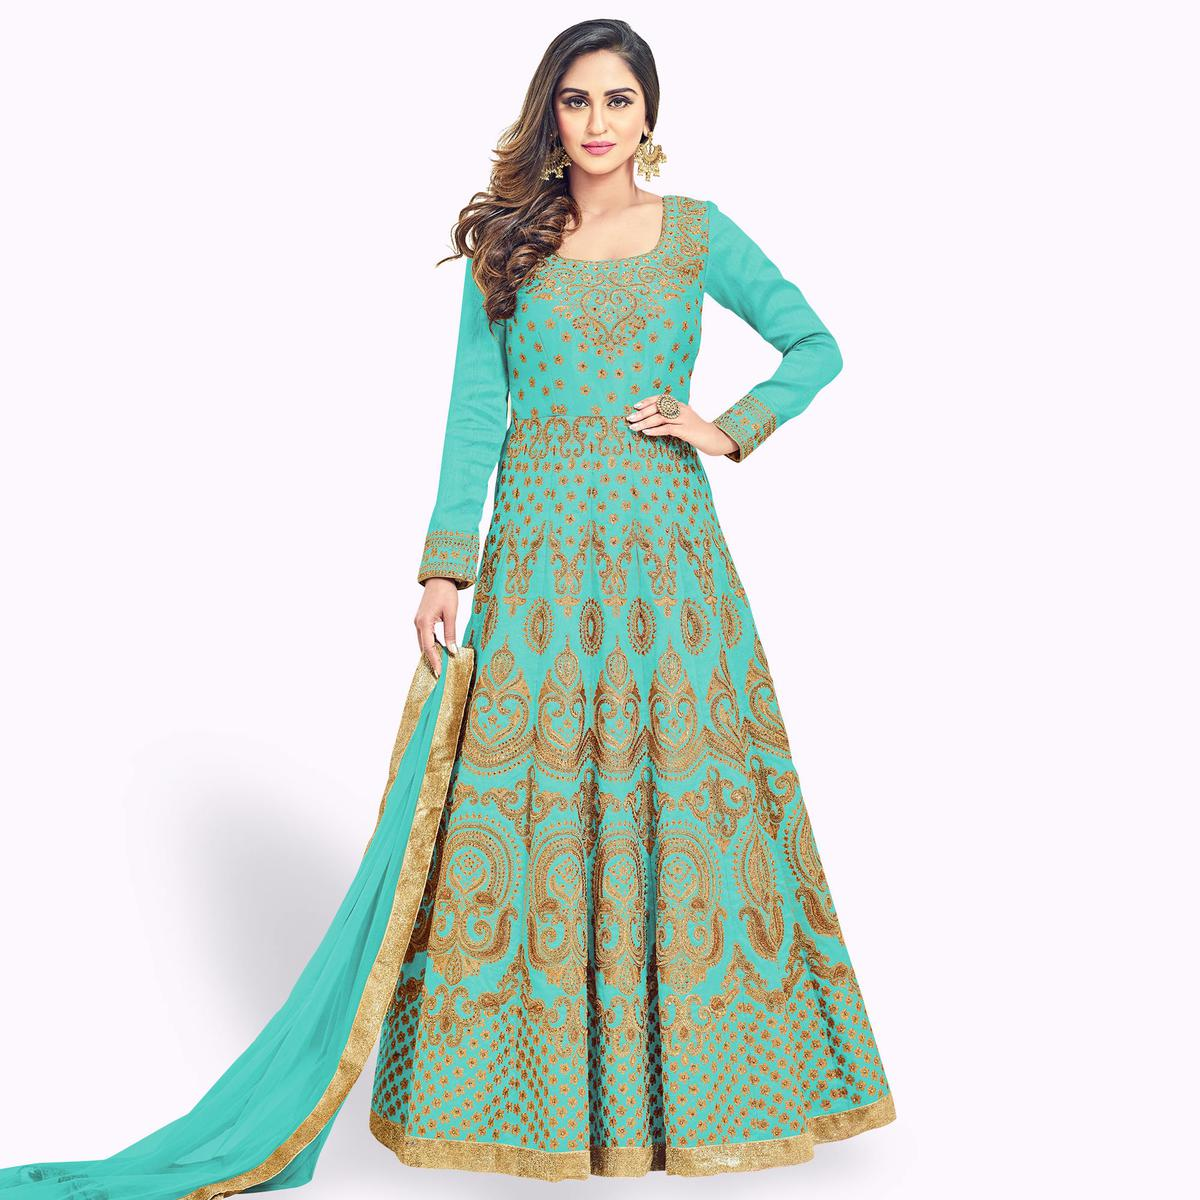 Attractive Turquoise Green Colored Heavy Embroidered Partywear Banglori Silk Anarkali Suit